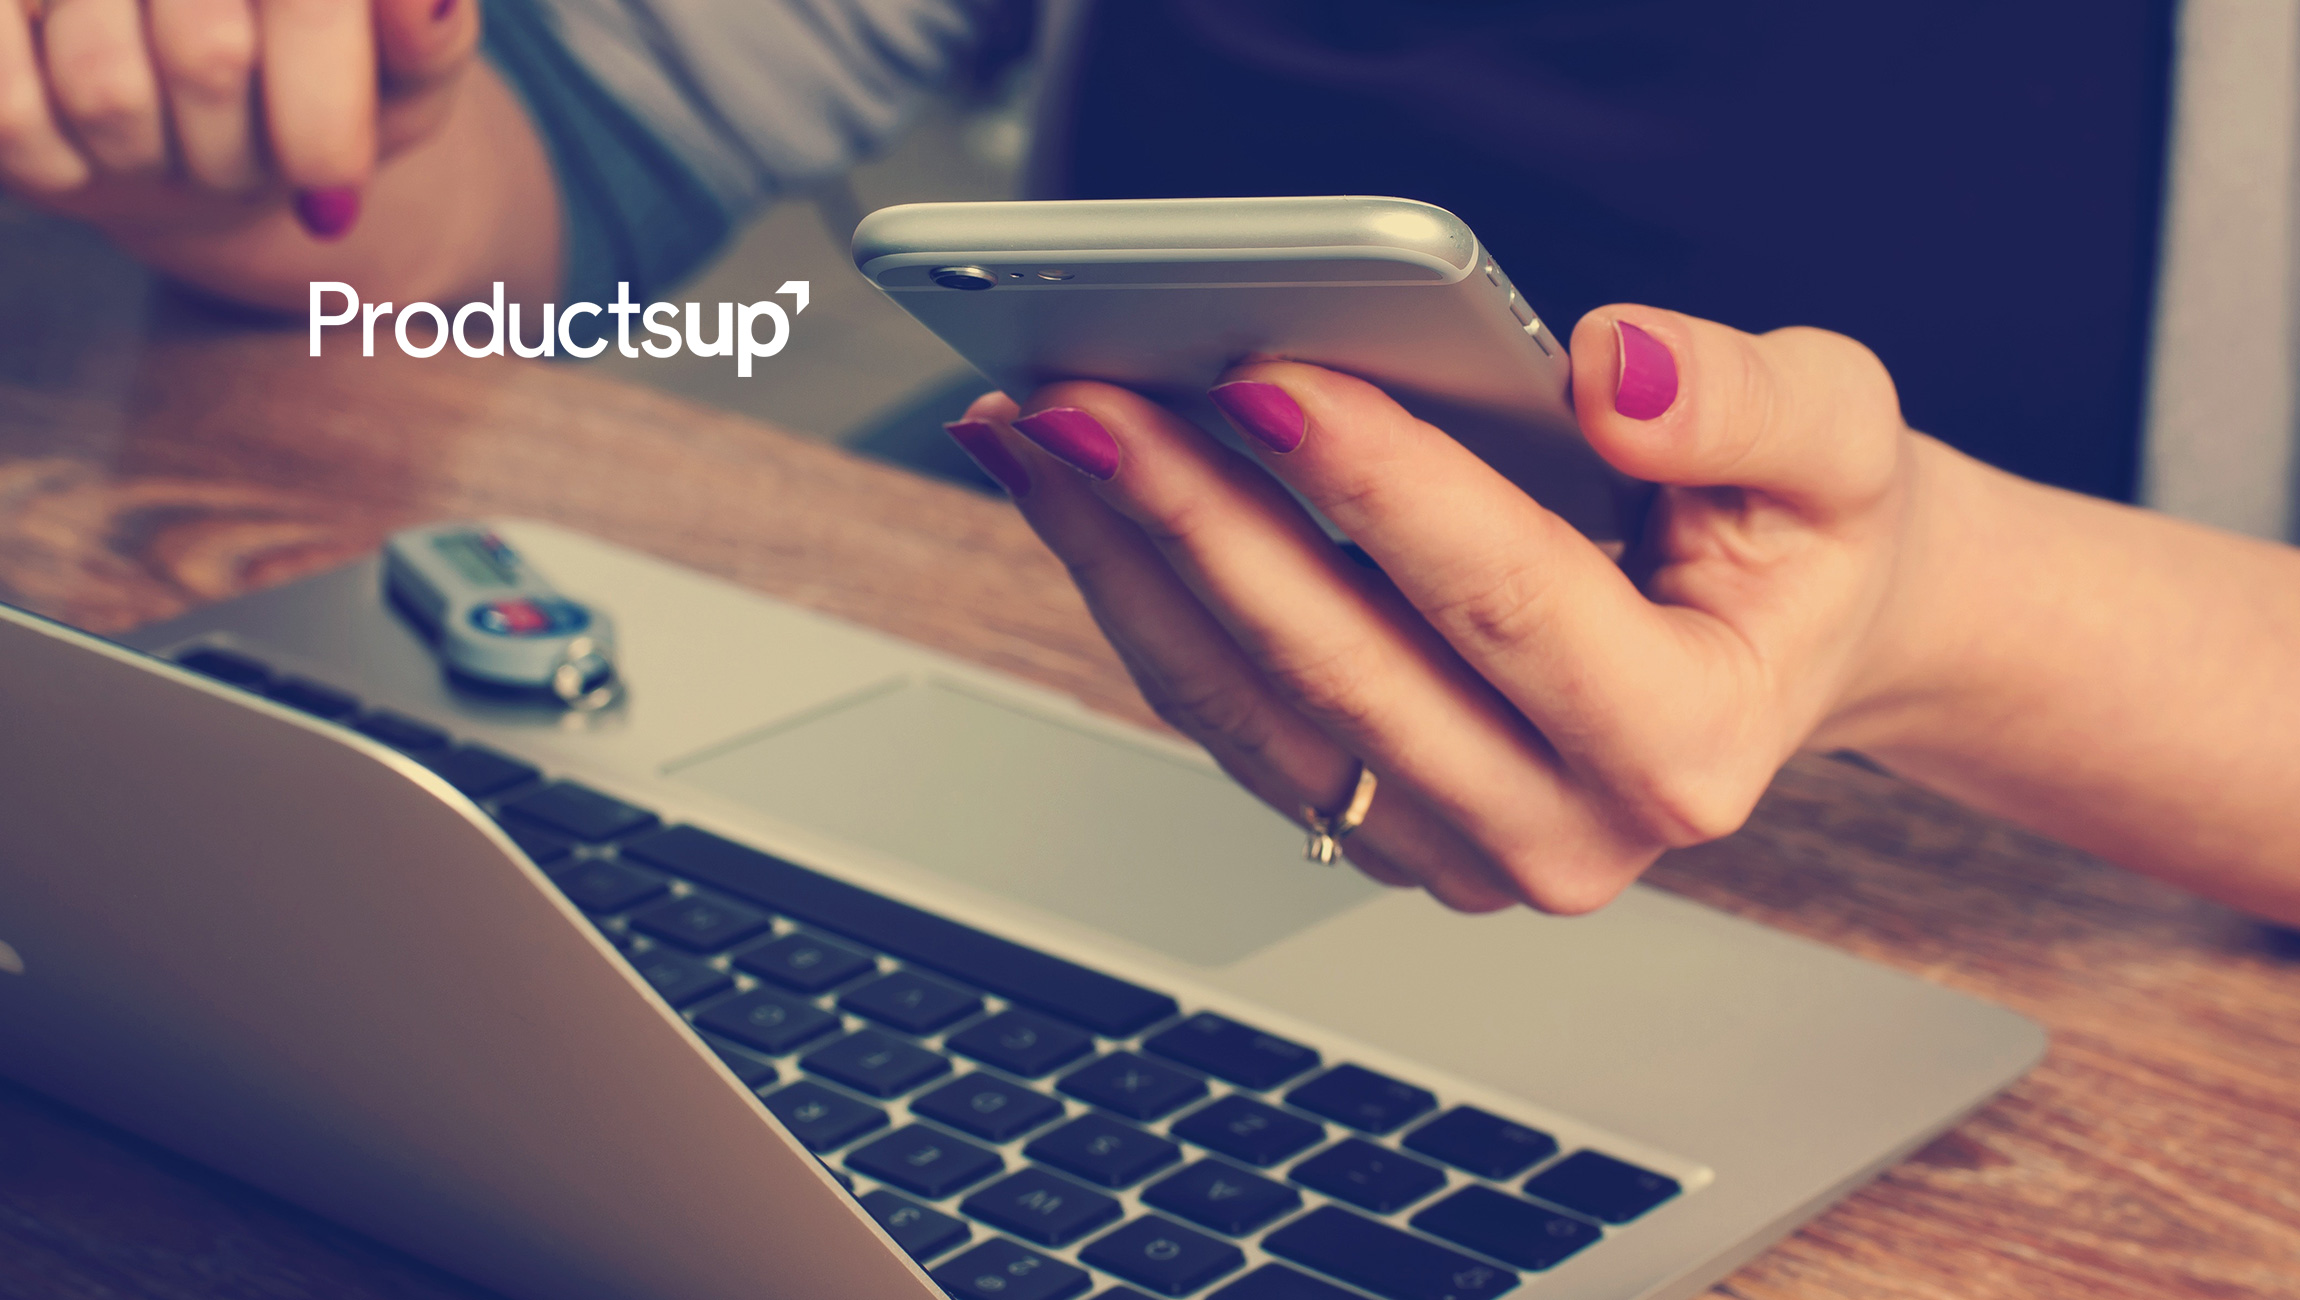 Productsup and Pimcore Announce Partnership to Simplify Multichannel Commerce